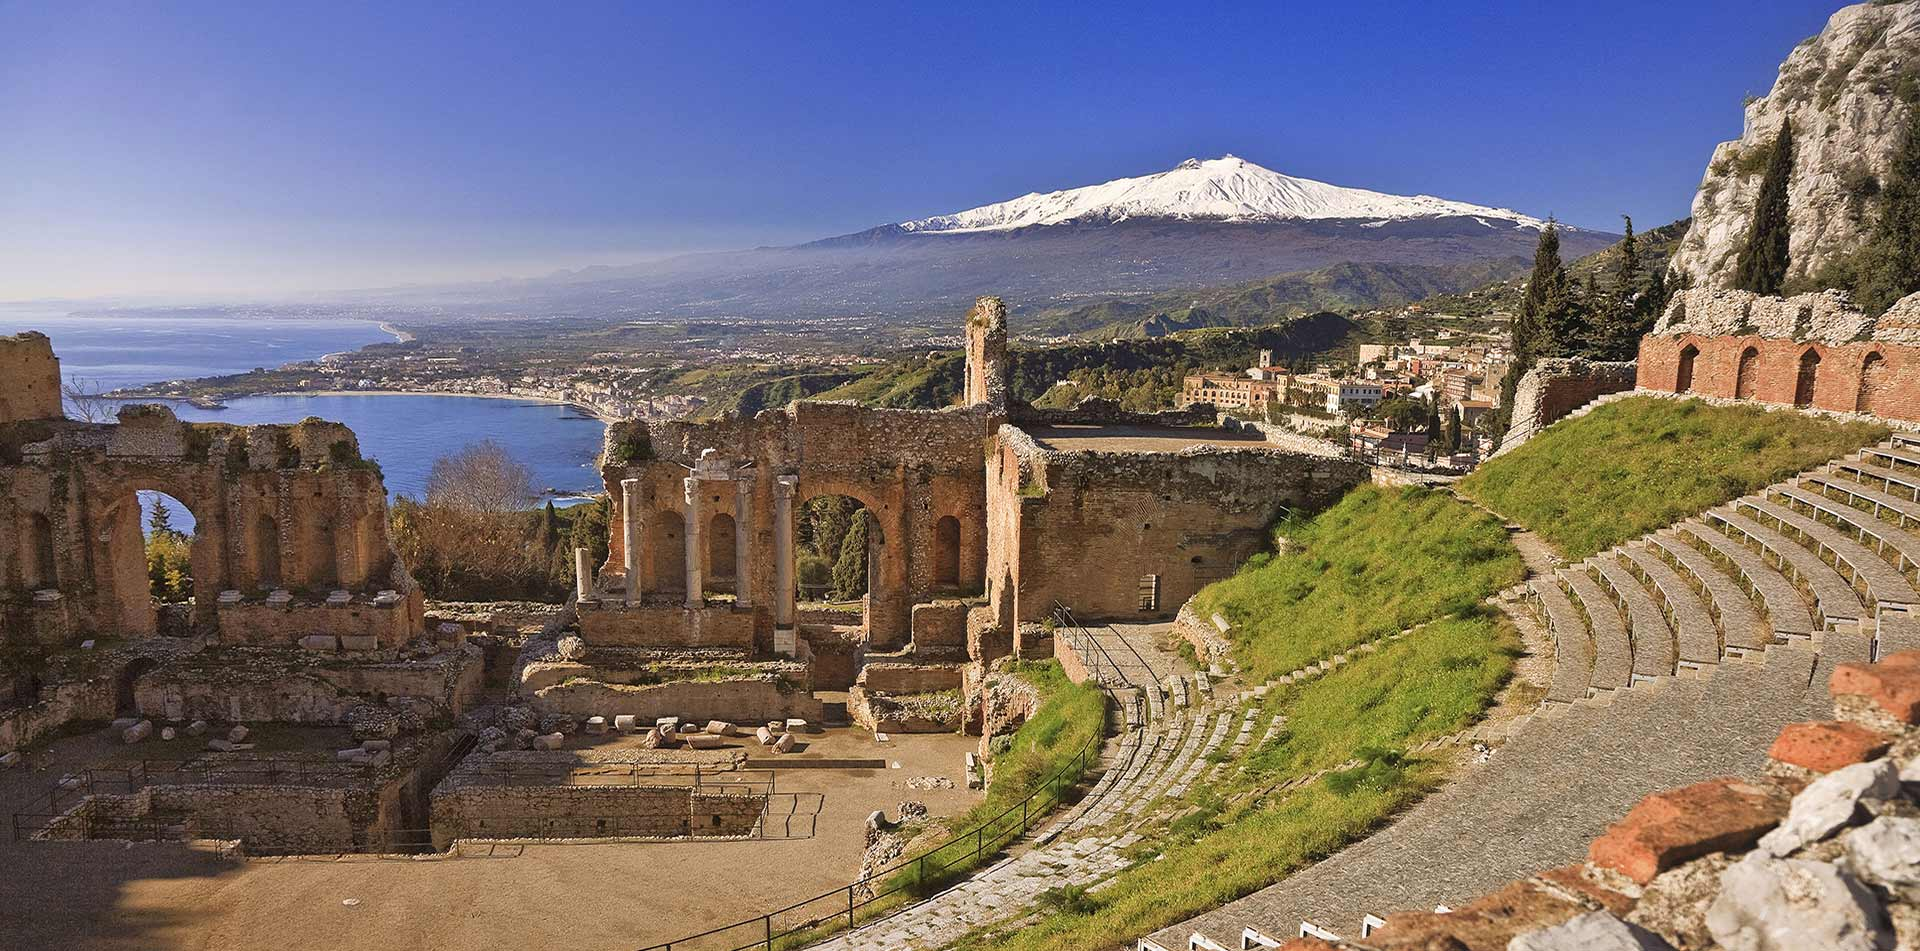 Europe Italy Sicily Teatro Antico di Taormina ancient Greek amphitheater with view of Mt Etna - luxury vacation destinations